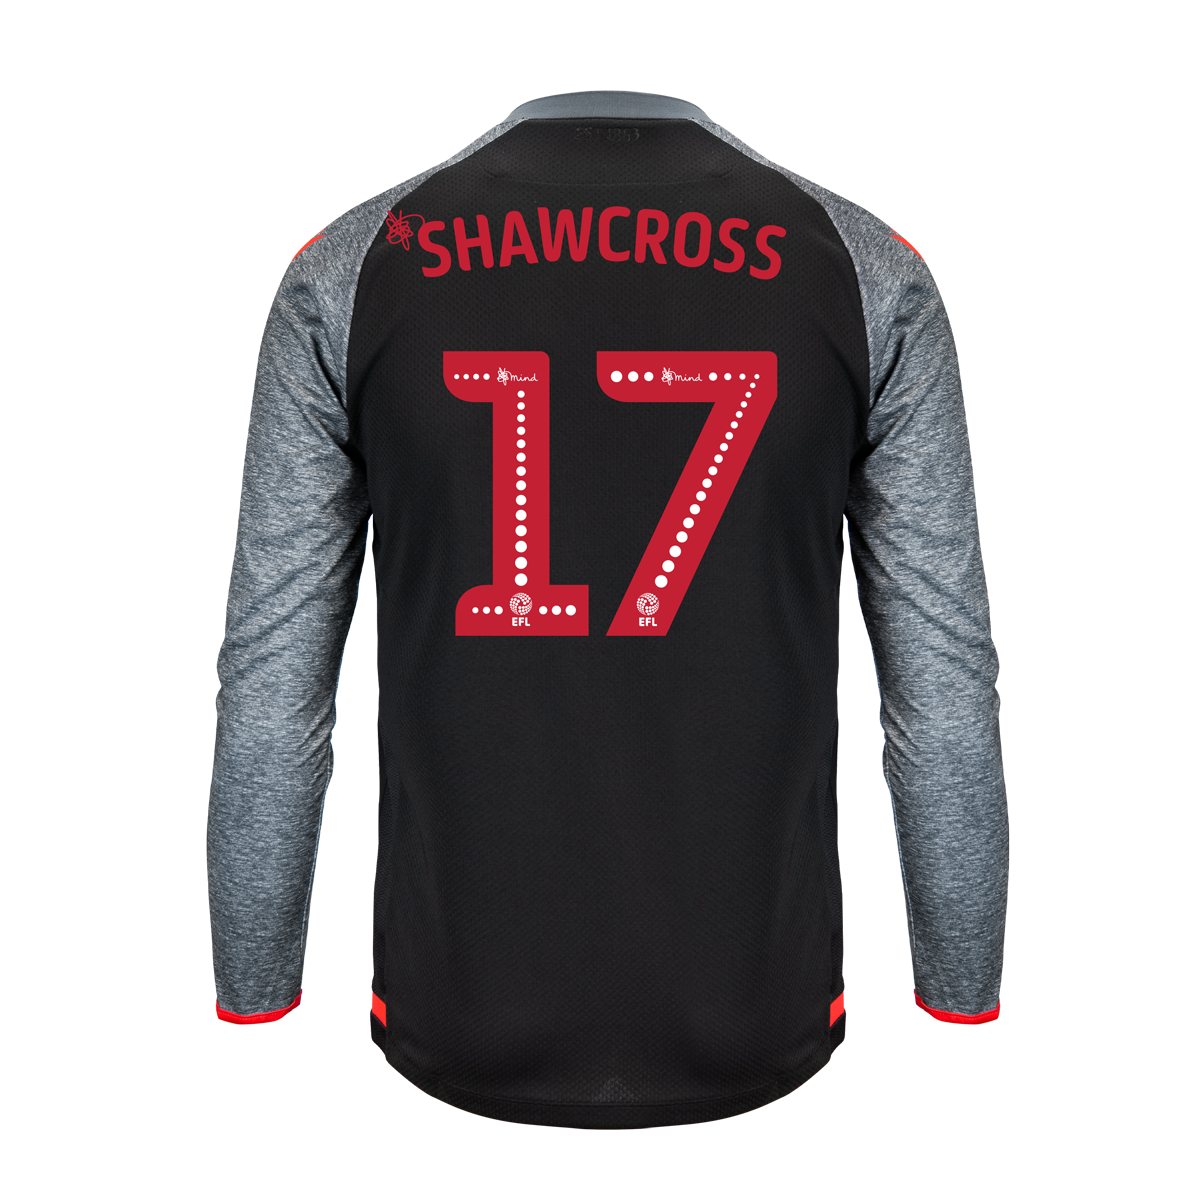 2019/20 Junior Away LS Shirt - Shawcross